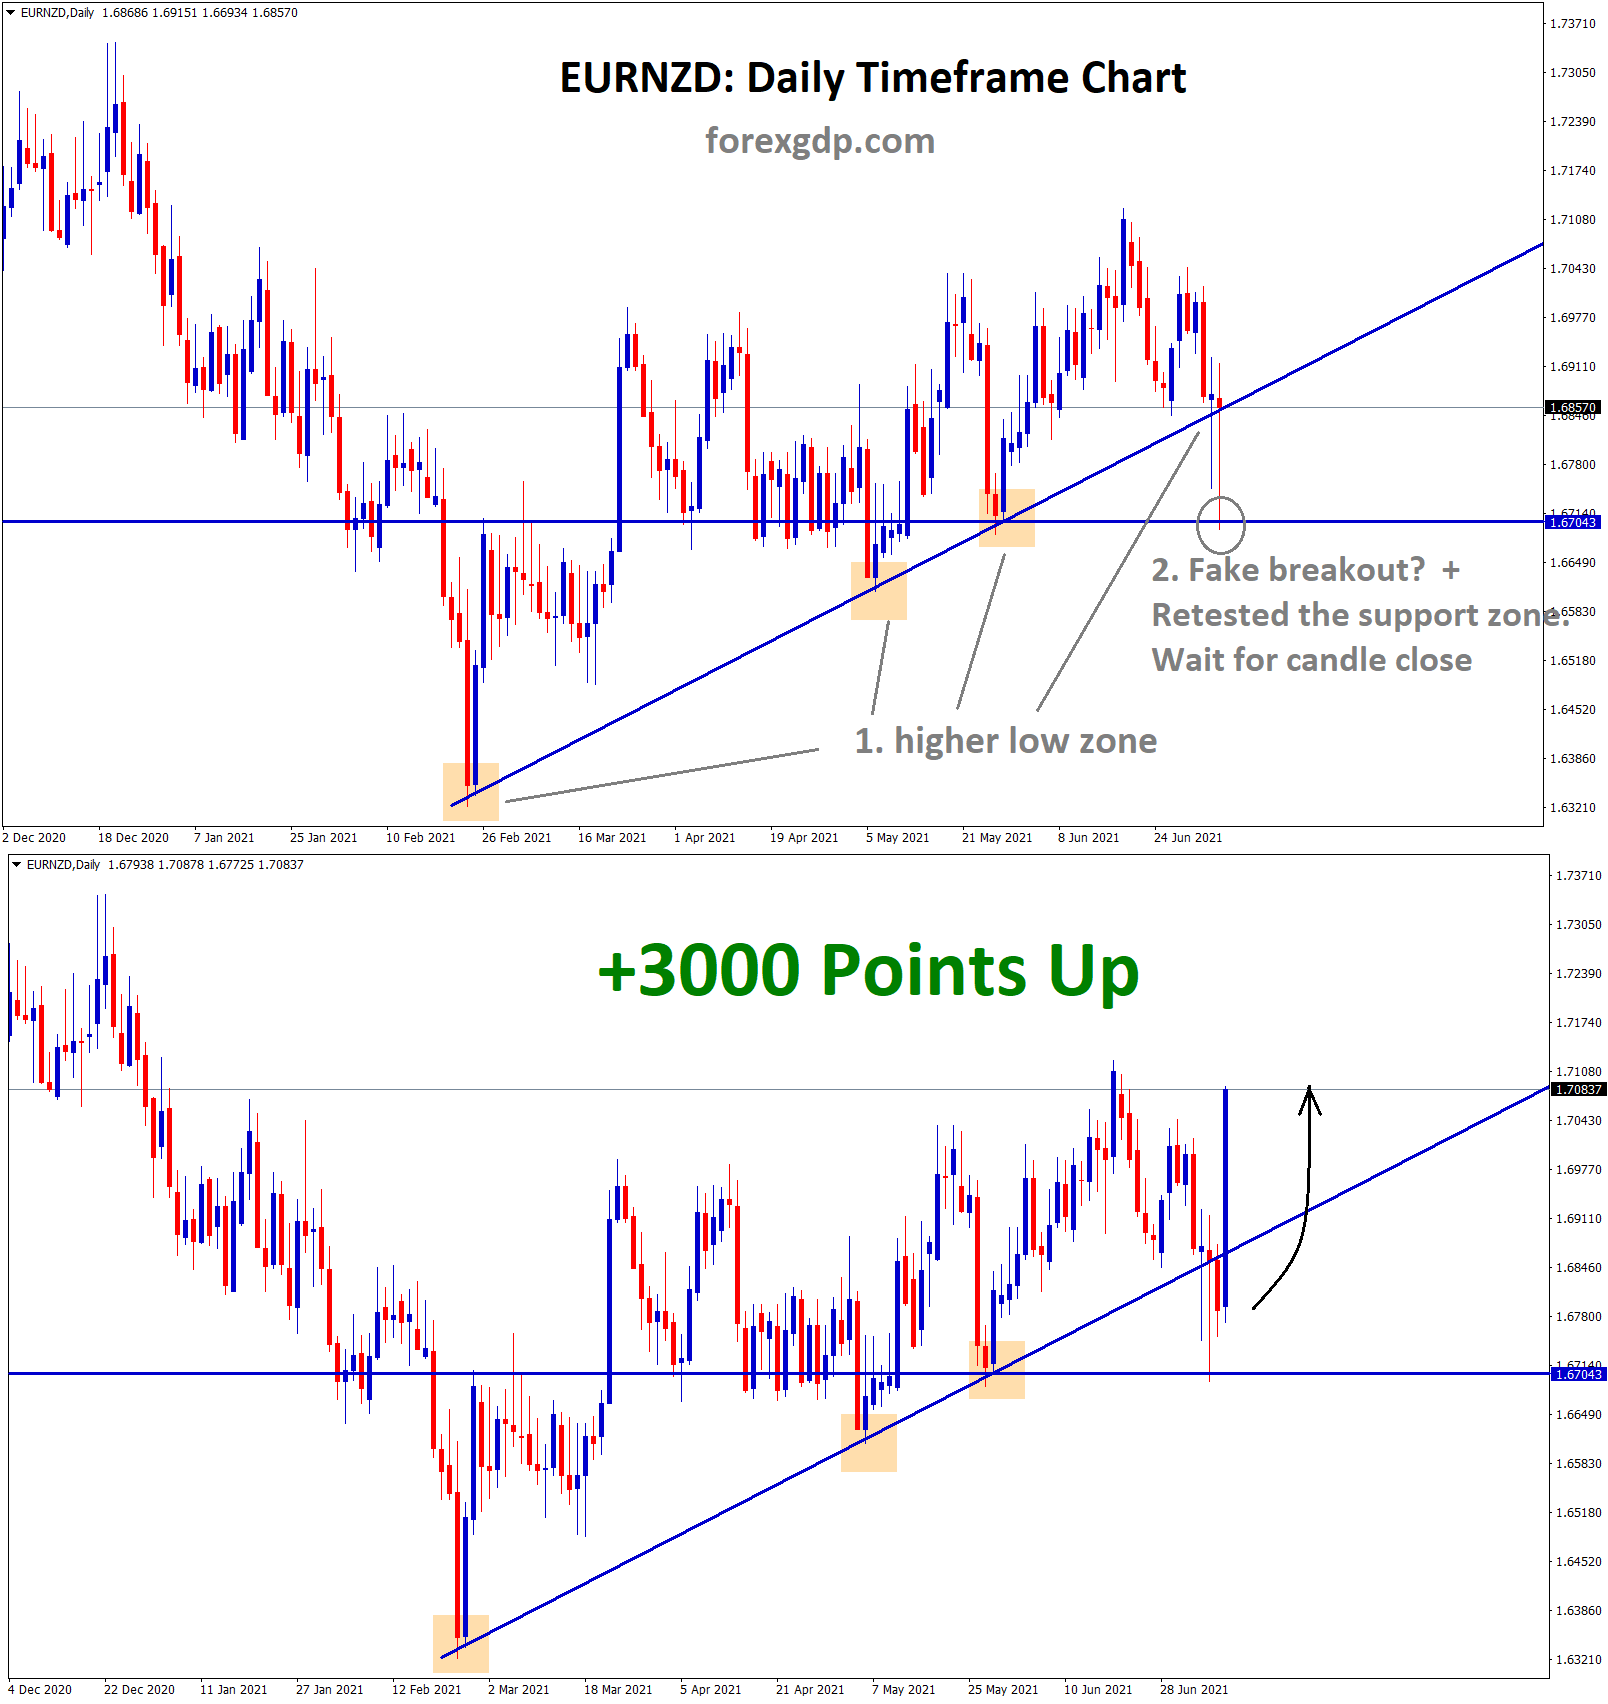 EURNZD has made a fake breakout and rested the support zone wait for candle closing to confirm the reversal. 1